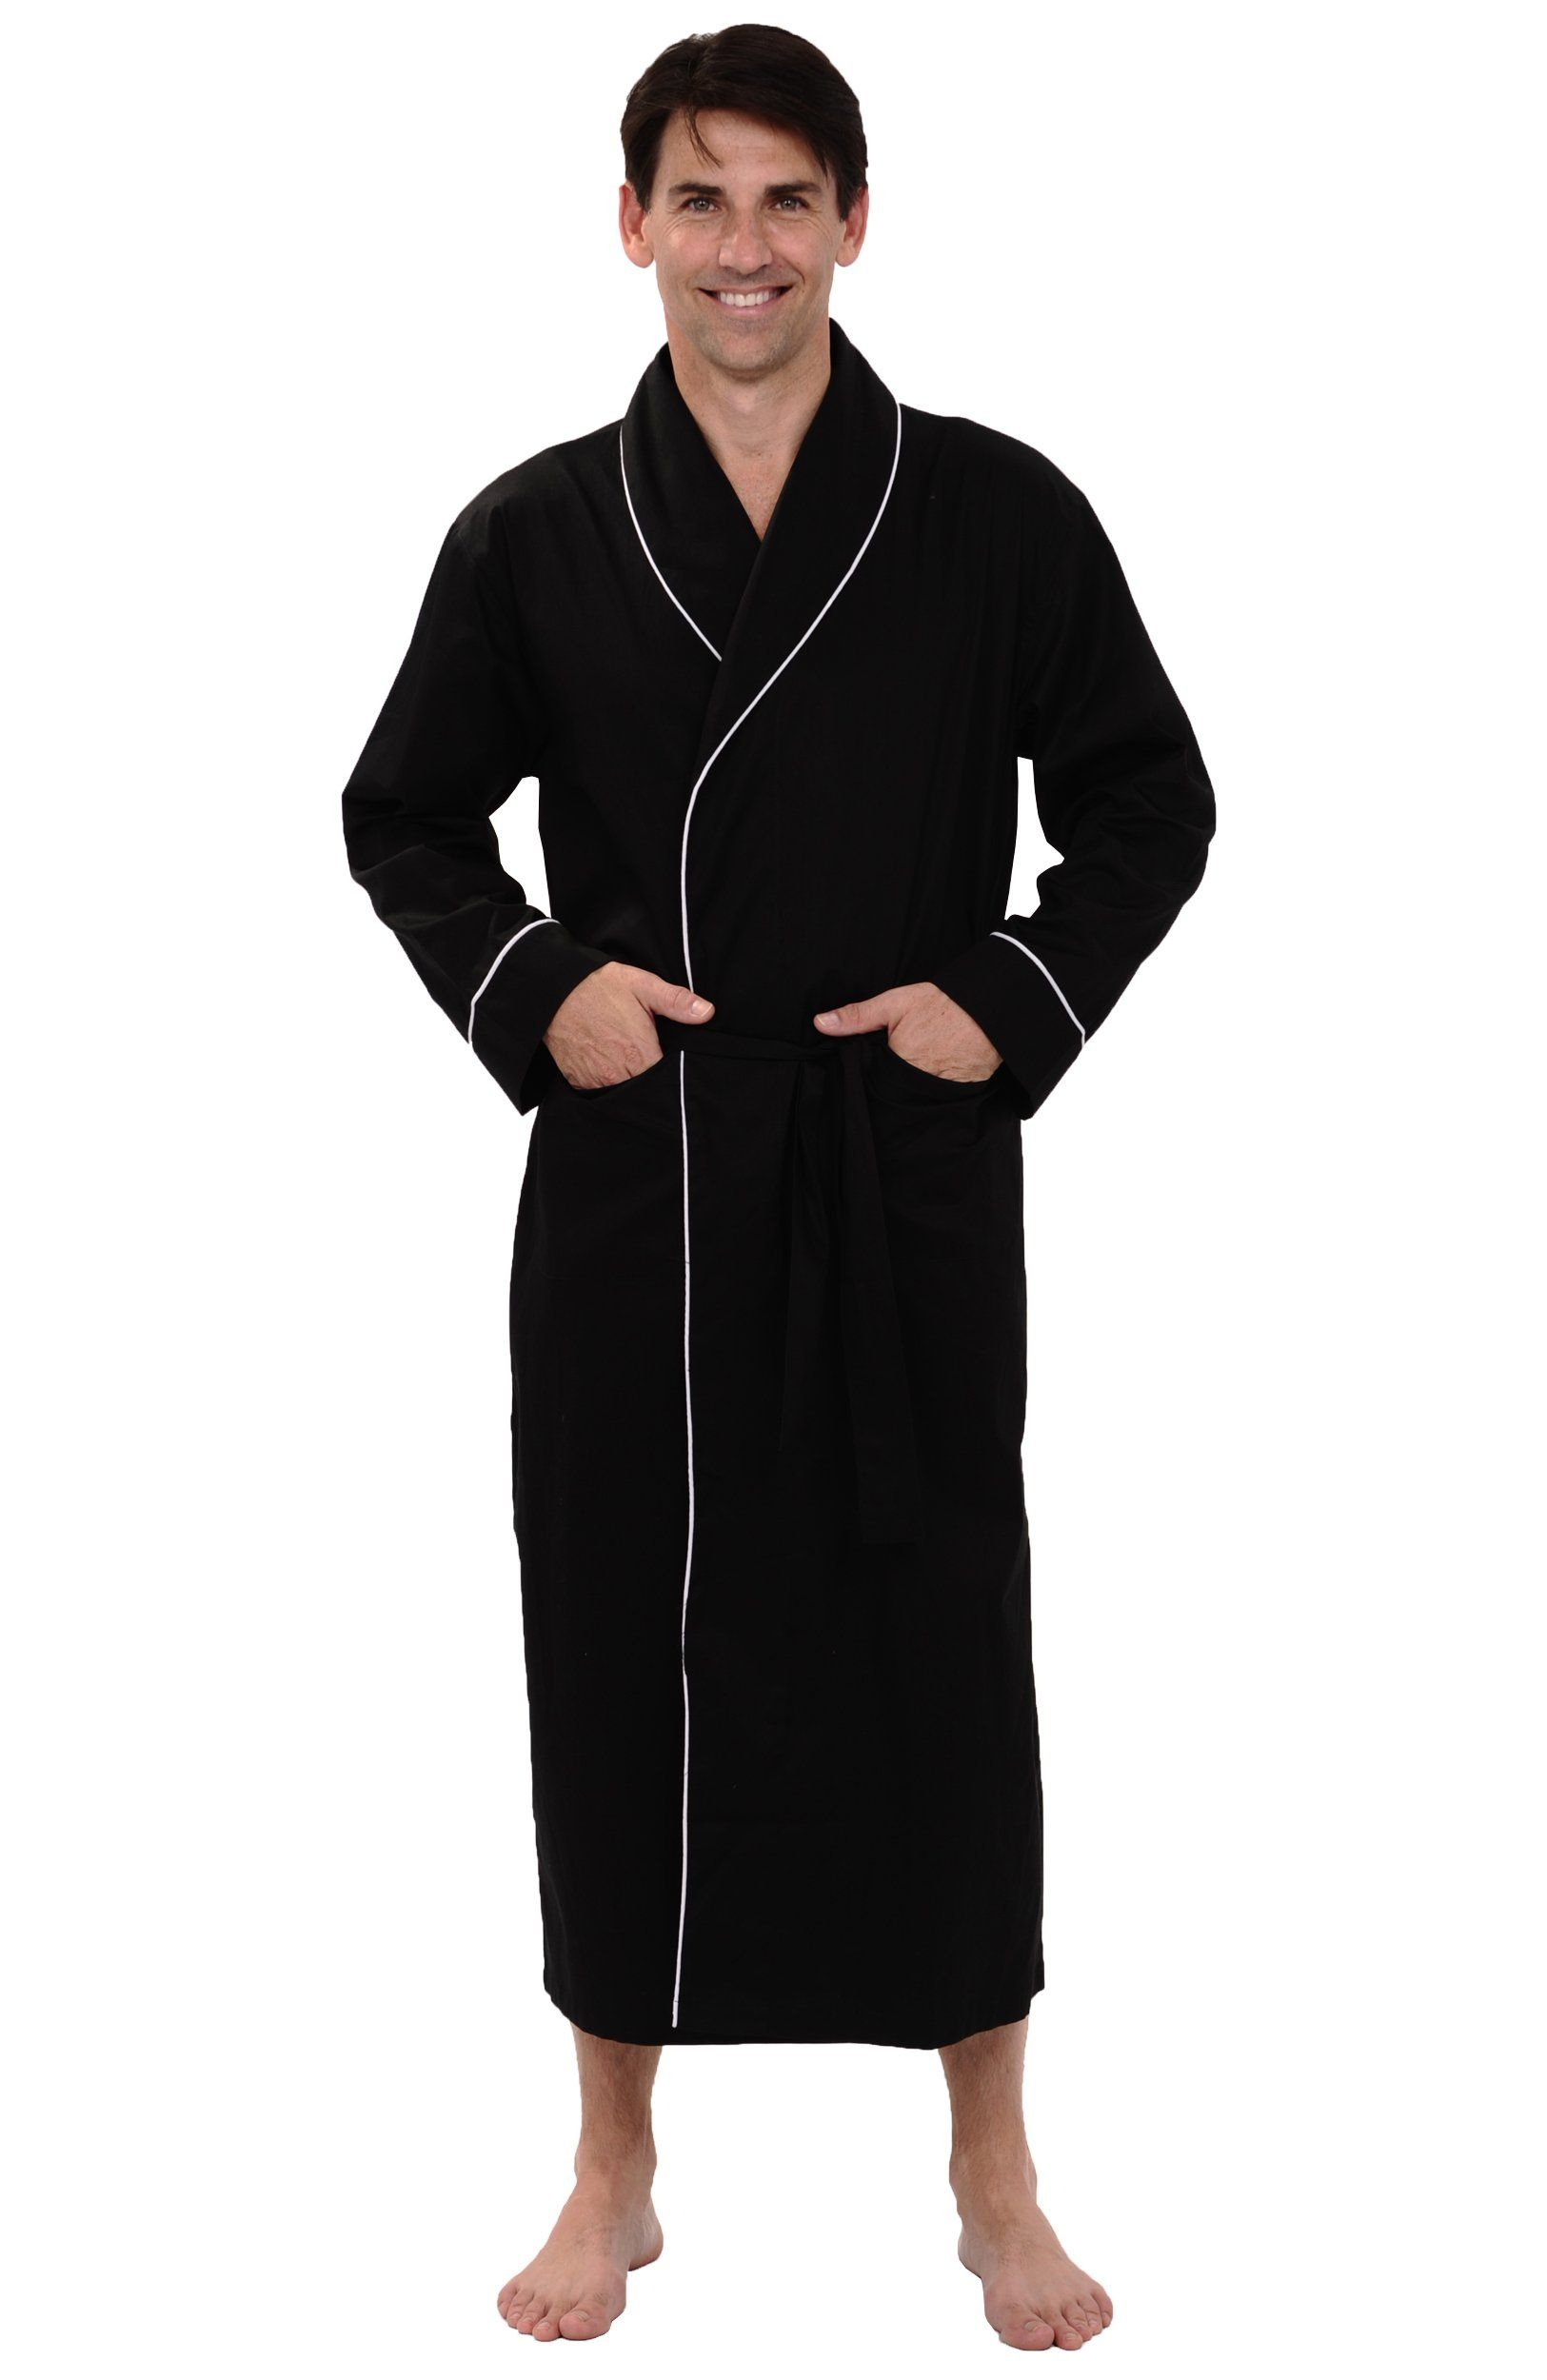 a7f6f3233b Del Rossa Men s 100% Cotton Lightweight Woven Bathrobe Robe